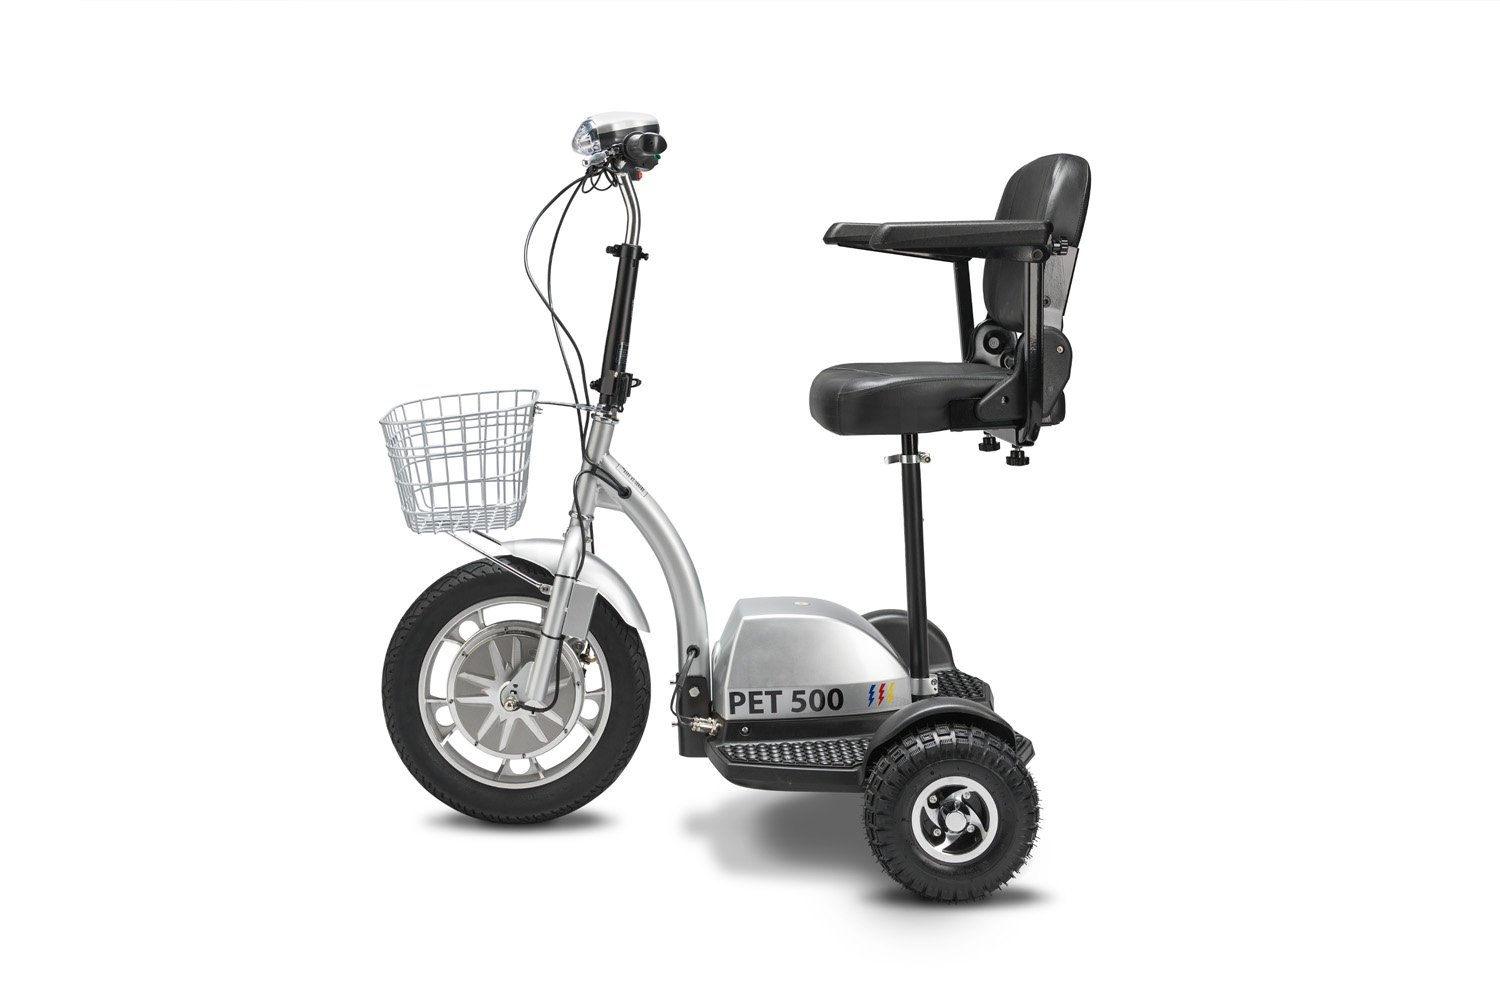 Pet Pro Flex 500 Electric Scooter Wiring Schematic Scooters For Sale